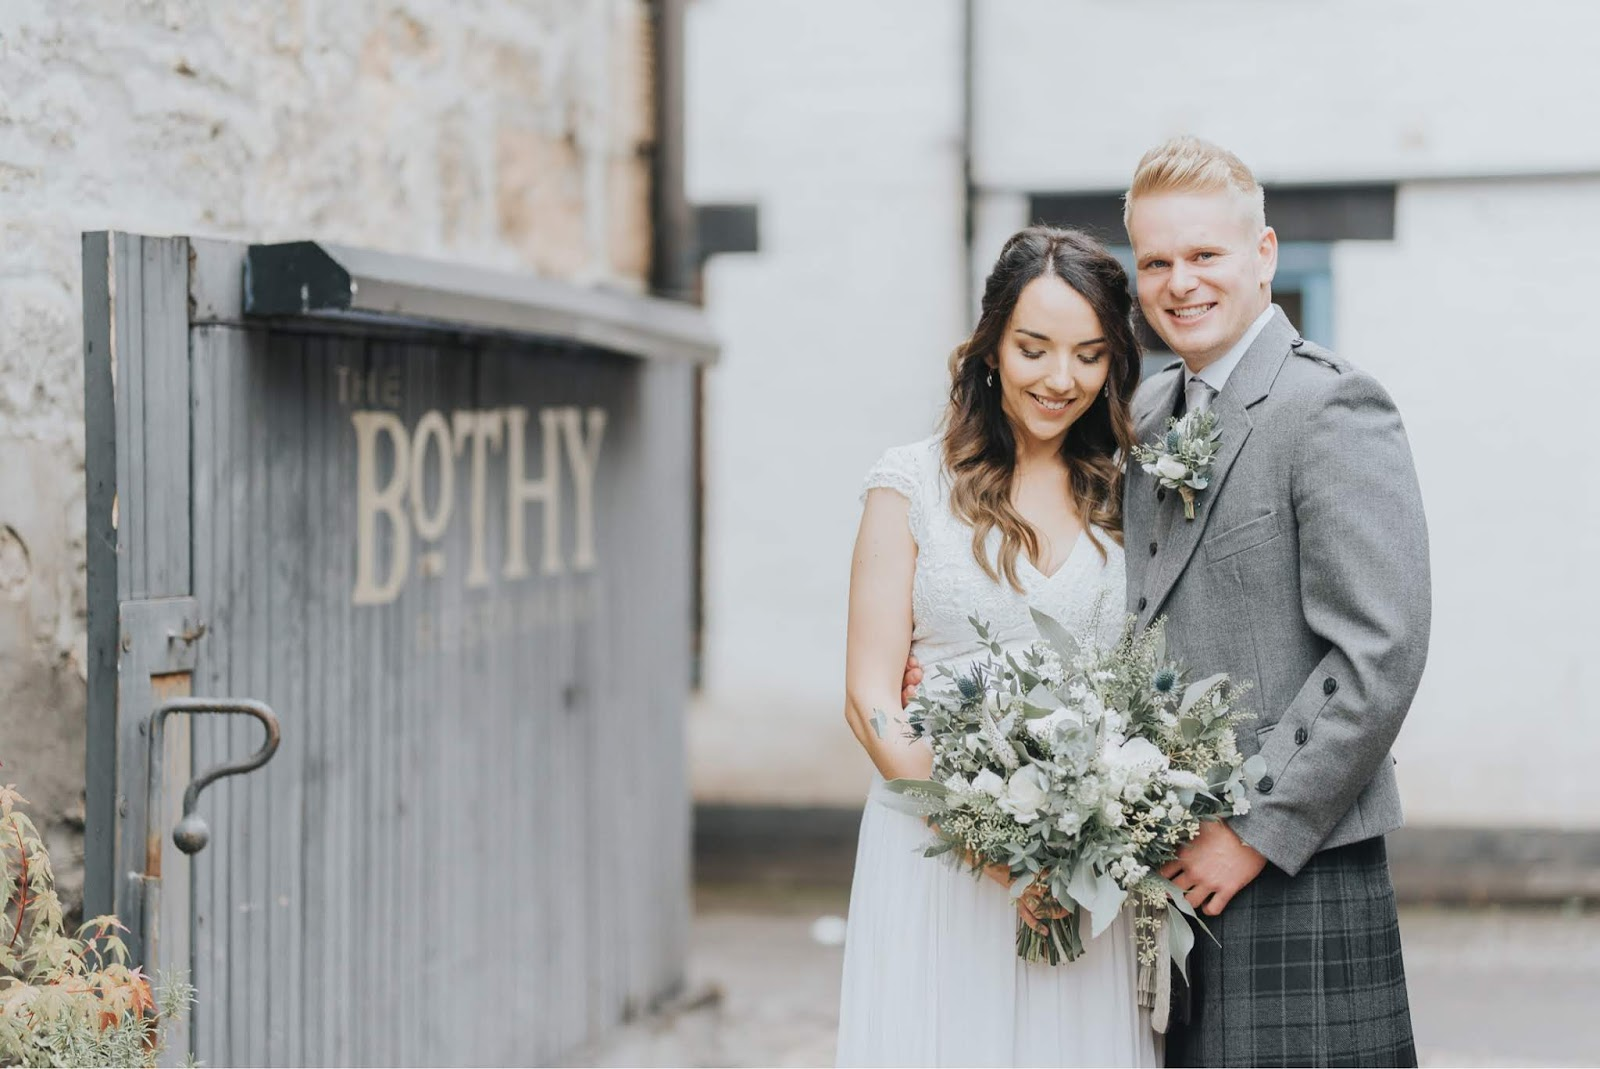 The Bothy Glasgow Wee Weddings